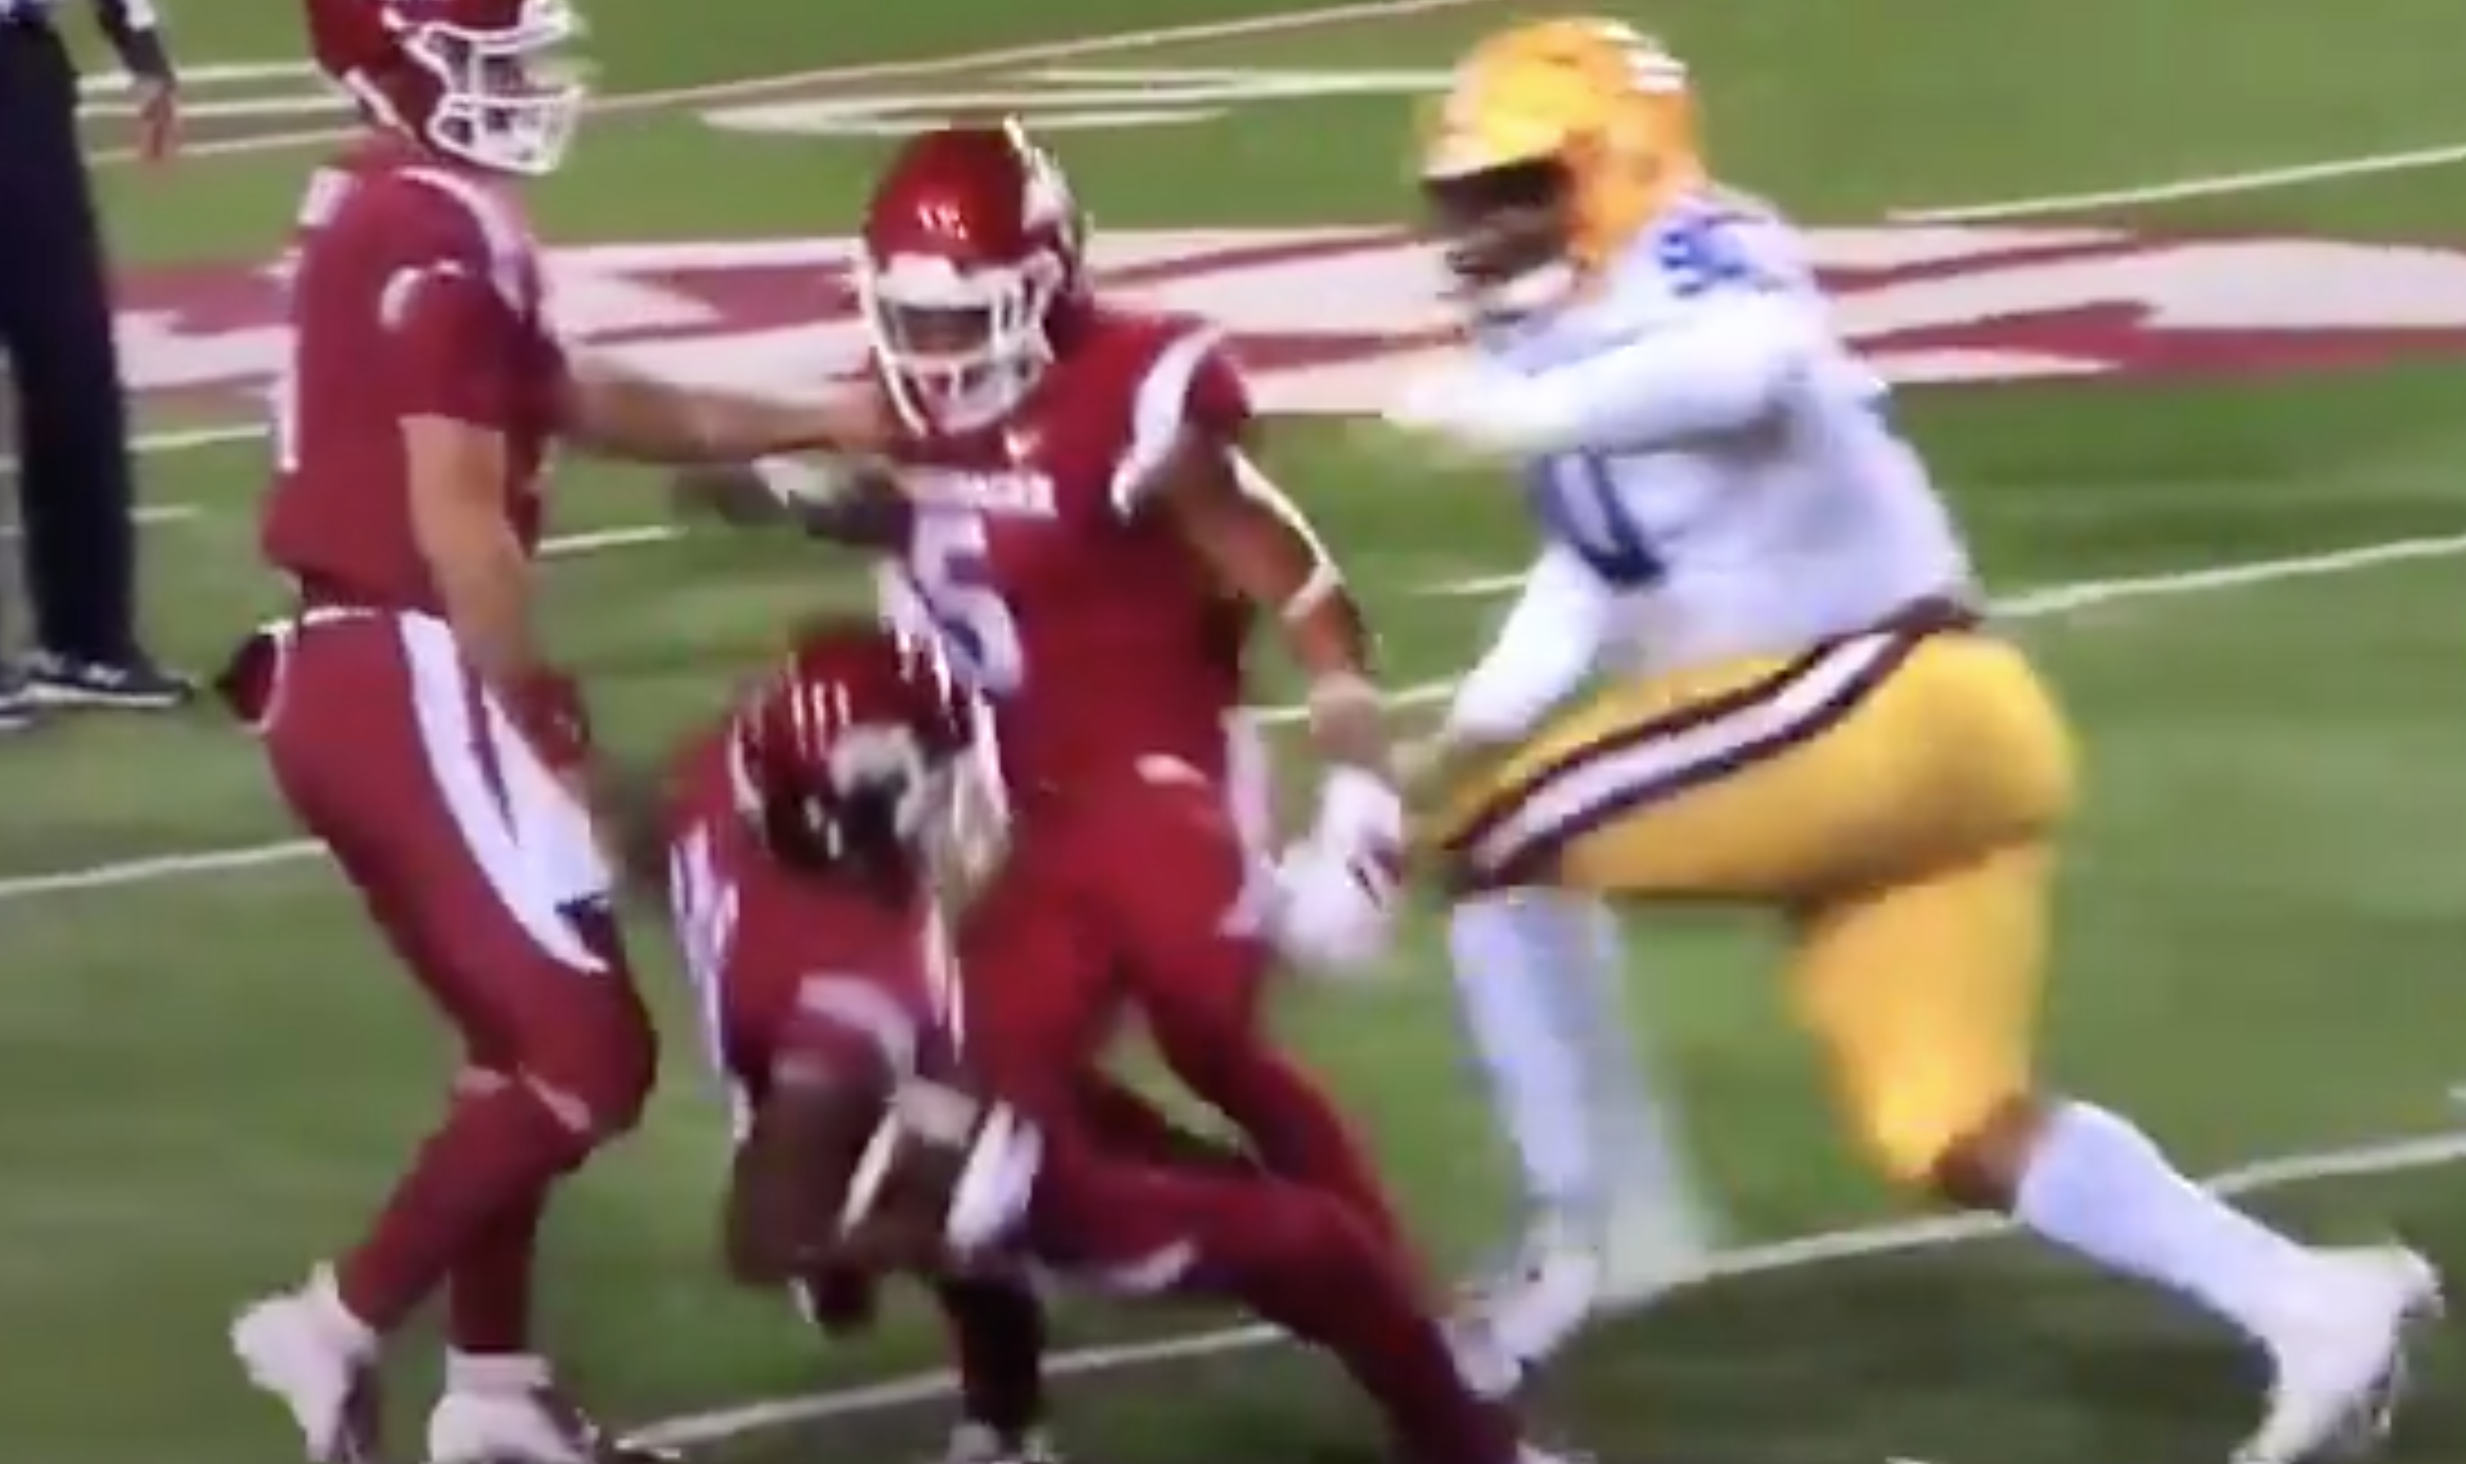 Let's see what Arkansas has dialed up h-BONK